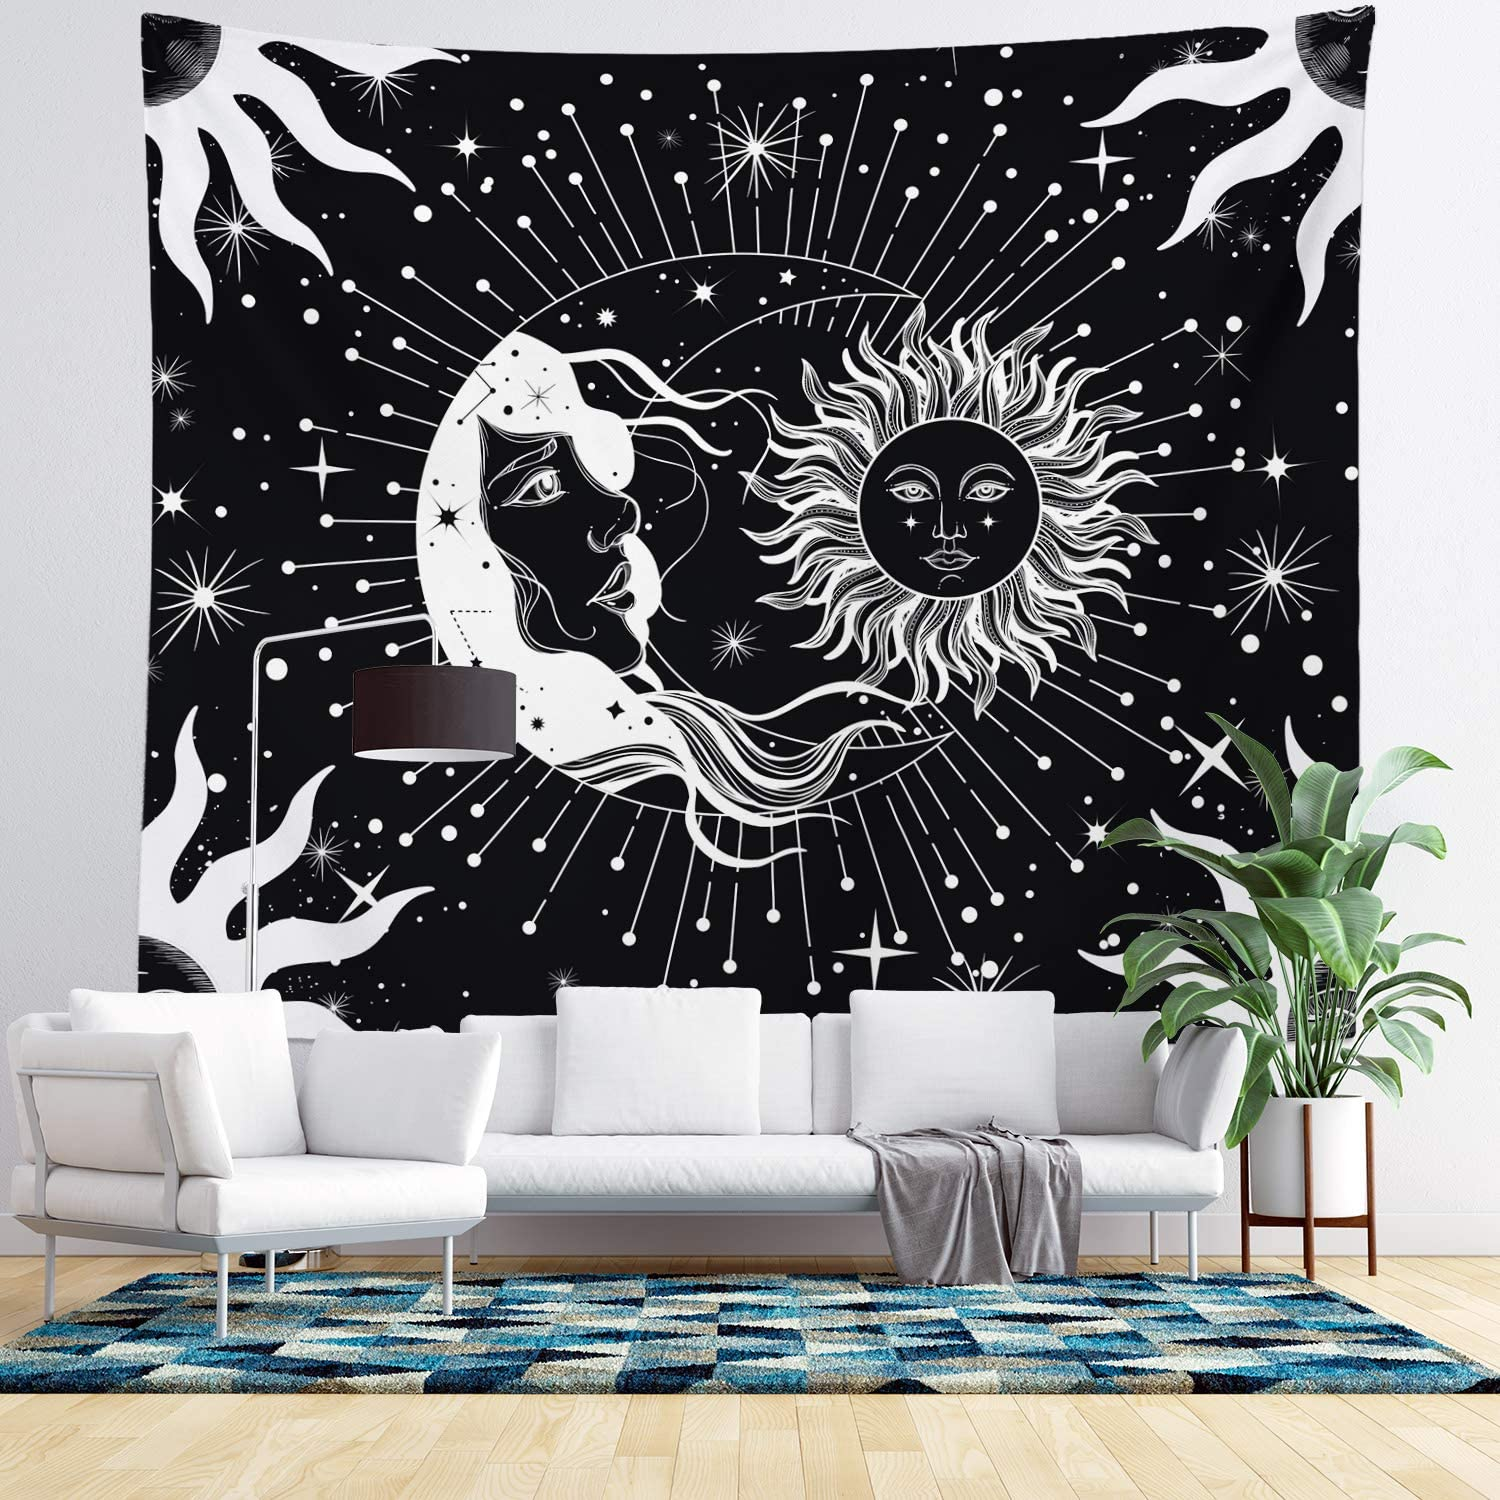 Moon and Sun Wall Hanging Tapestry - Black and White Wall Tapestry - Nature, Girl, Starry Sky & Constellation - Celestial Living Room Decor & Home Wall Art - Large Tapestries for Bedroom & Dorm Room